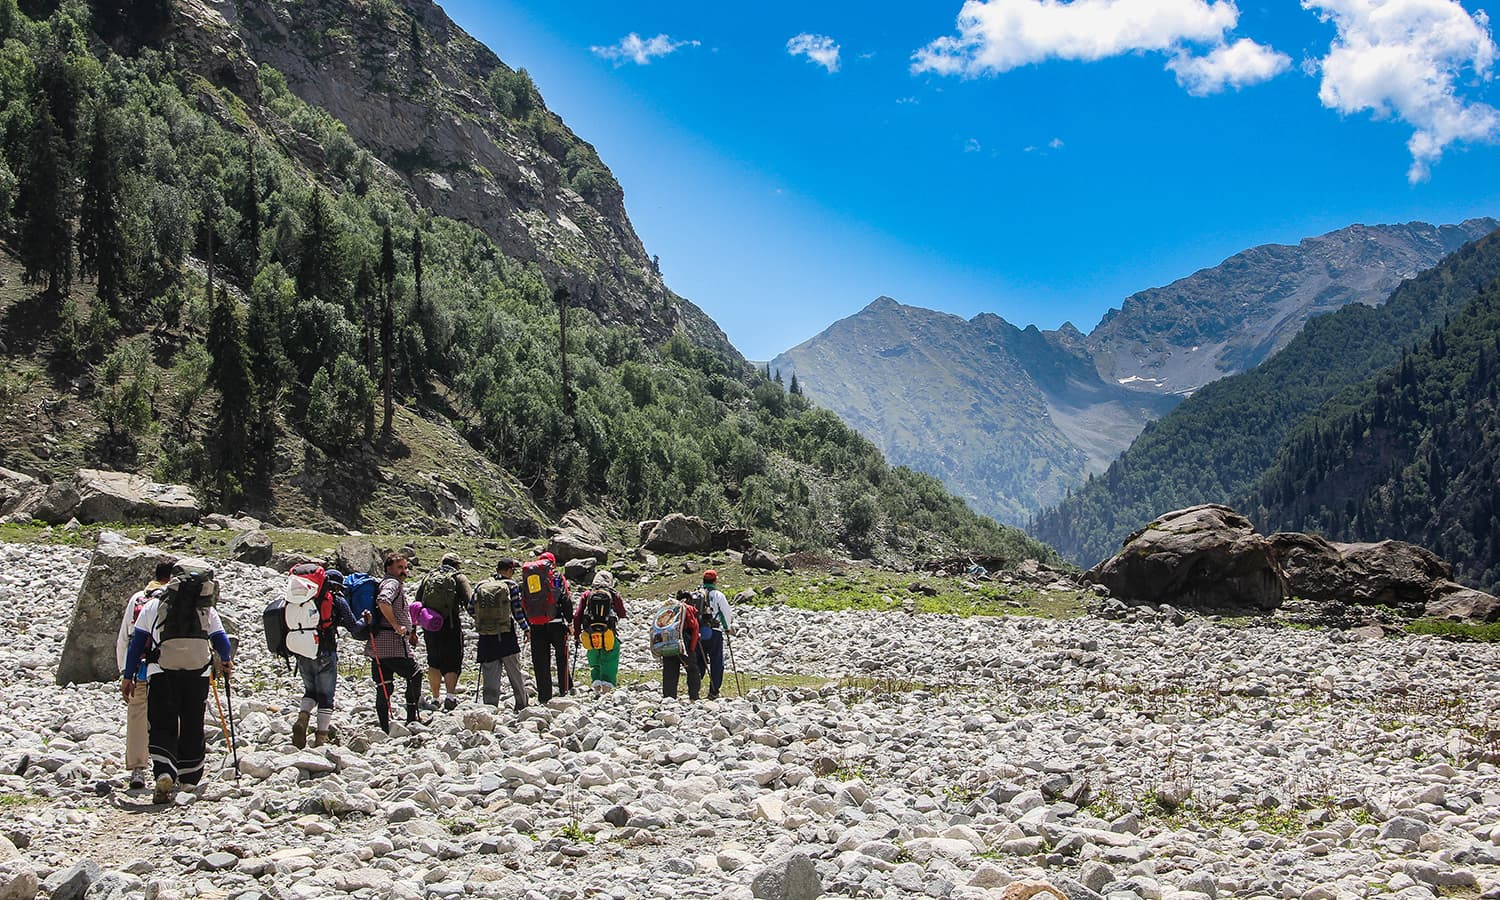 Trekkers on the way to Kooh Lake in Anakar Kalam valley.─Photo by author